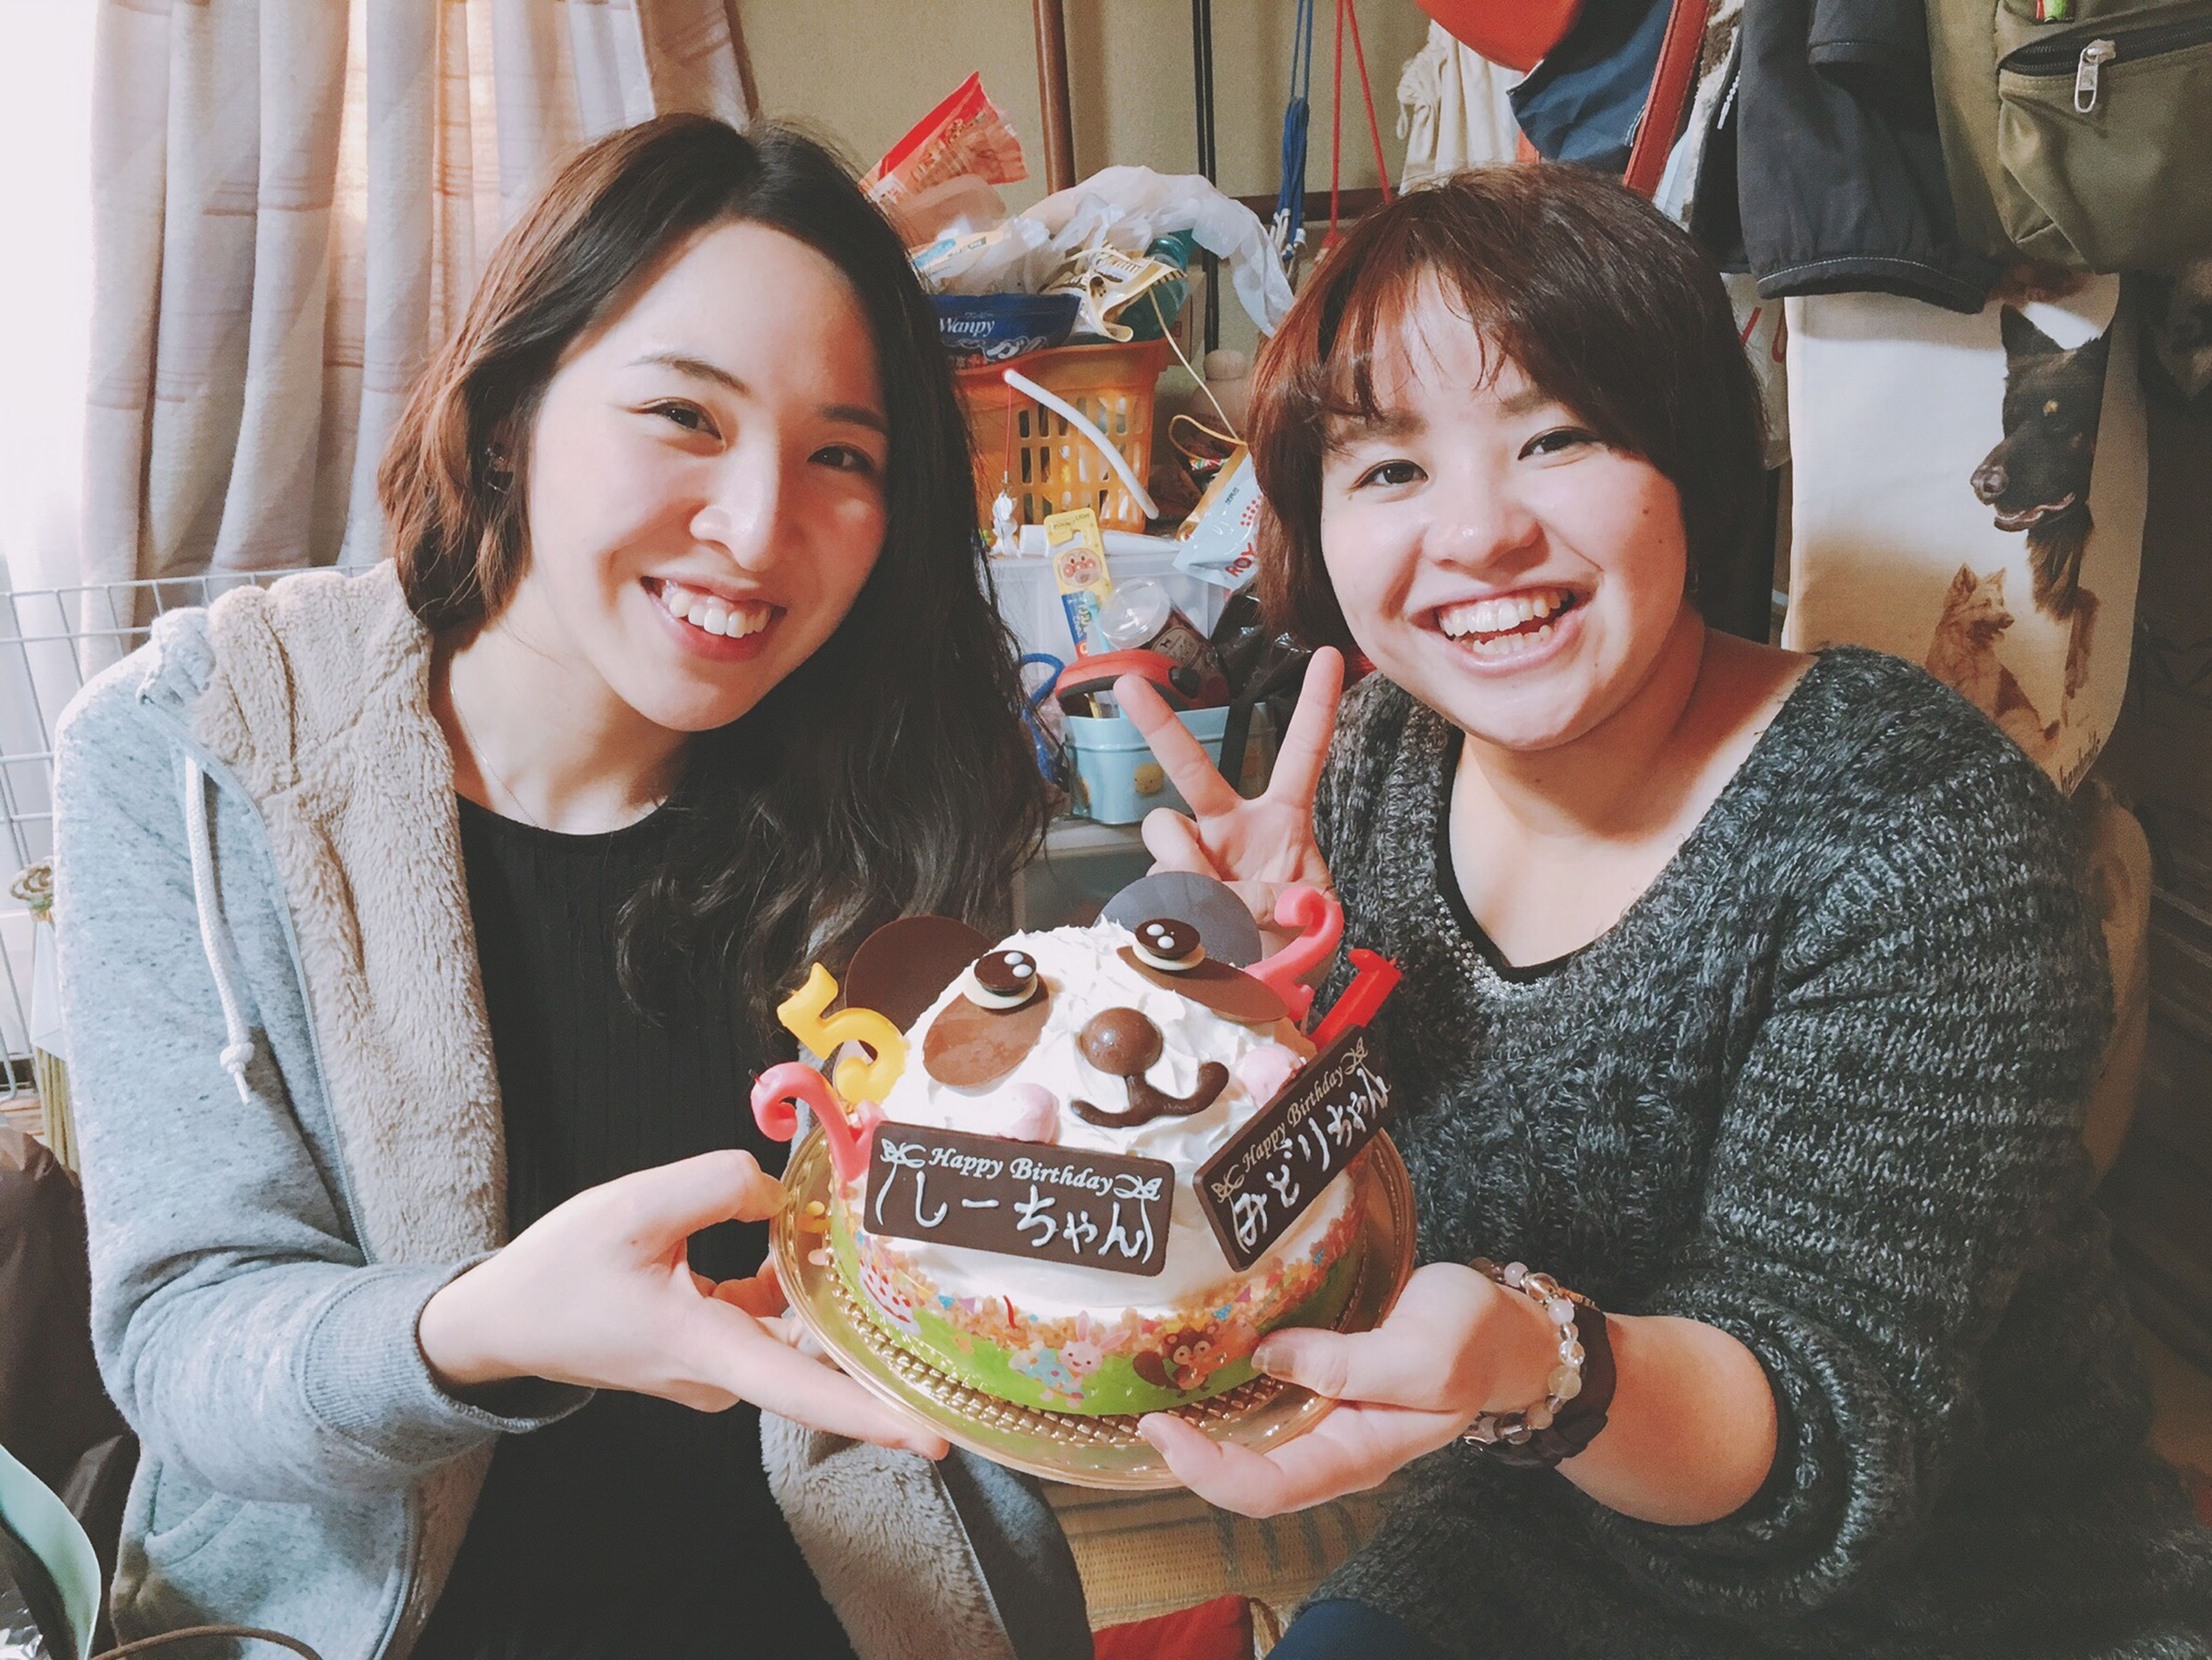 smiling, sweet food, cheerful, celebration, two people, happiness, dessert, enjoyment, friendship, child, portrait, christmas, indulgence, excitement, indoors, togetherness, childhood, young women, young adult, food, people, birthday cake, birthday candles, day